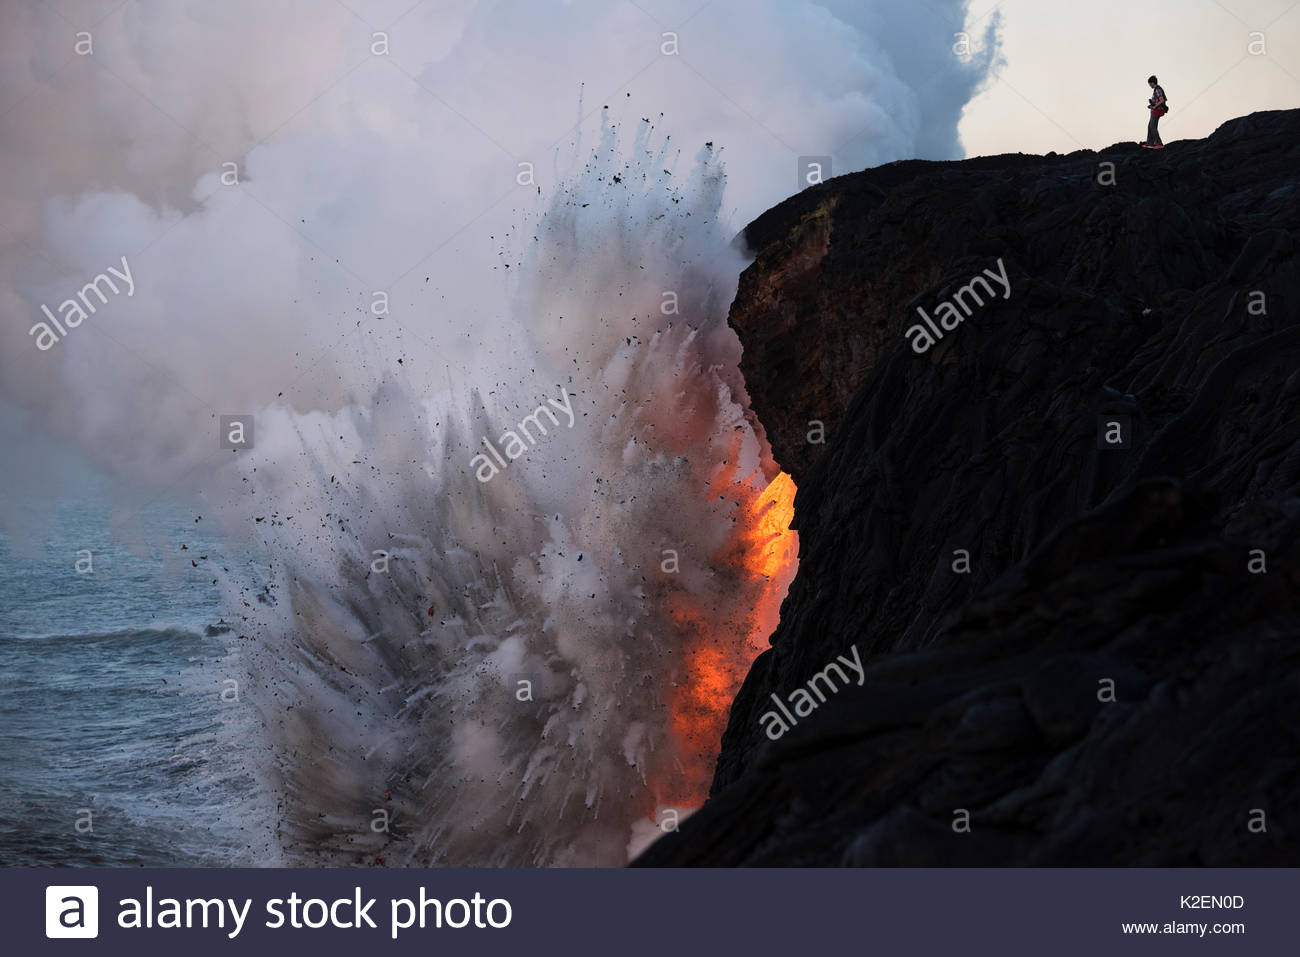 An unauthorized hiker in a restricted zone venturing out onto an unstable sea cliff over a lava tube where hot lava from the 61G flow from Kilauea Volcano enters the ocean from the open end of a lava tube, just as a violent steam explosion throws hot pumice rocks back onto the sea cliff, at the Kamokuna entry in Hawaii Volcanoes National Park, Puna, Hawaii. January 2017. - Stock Image